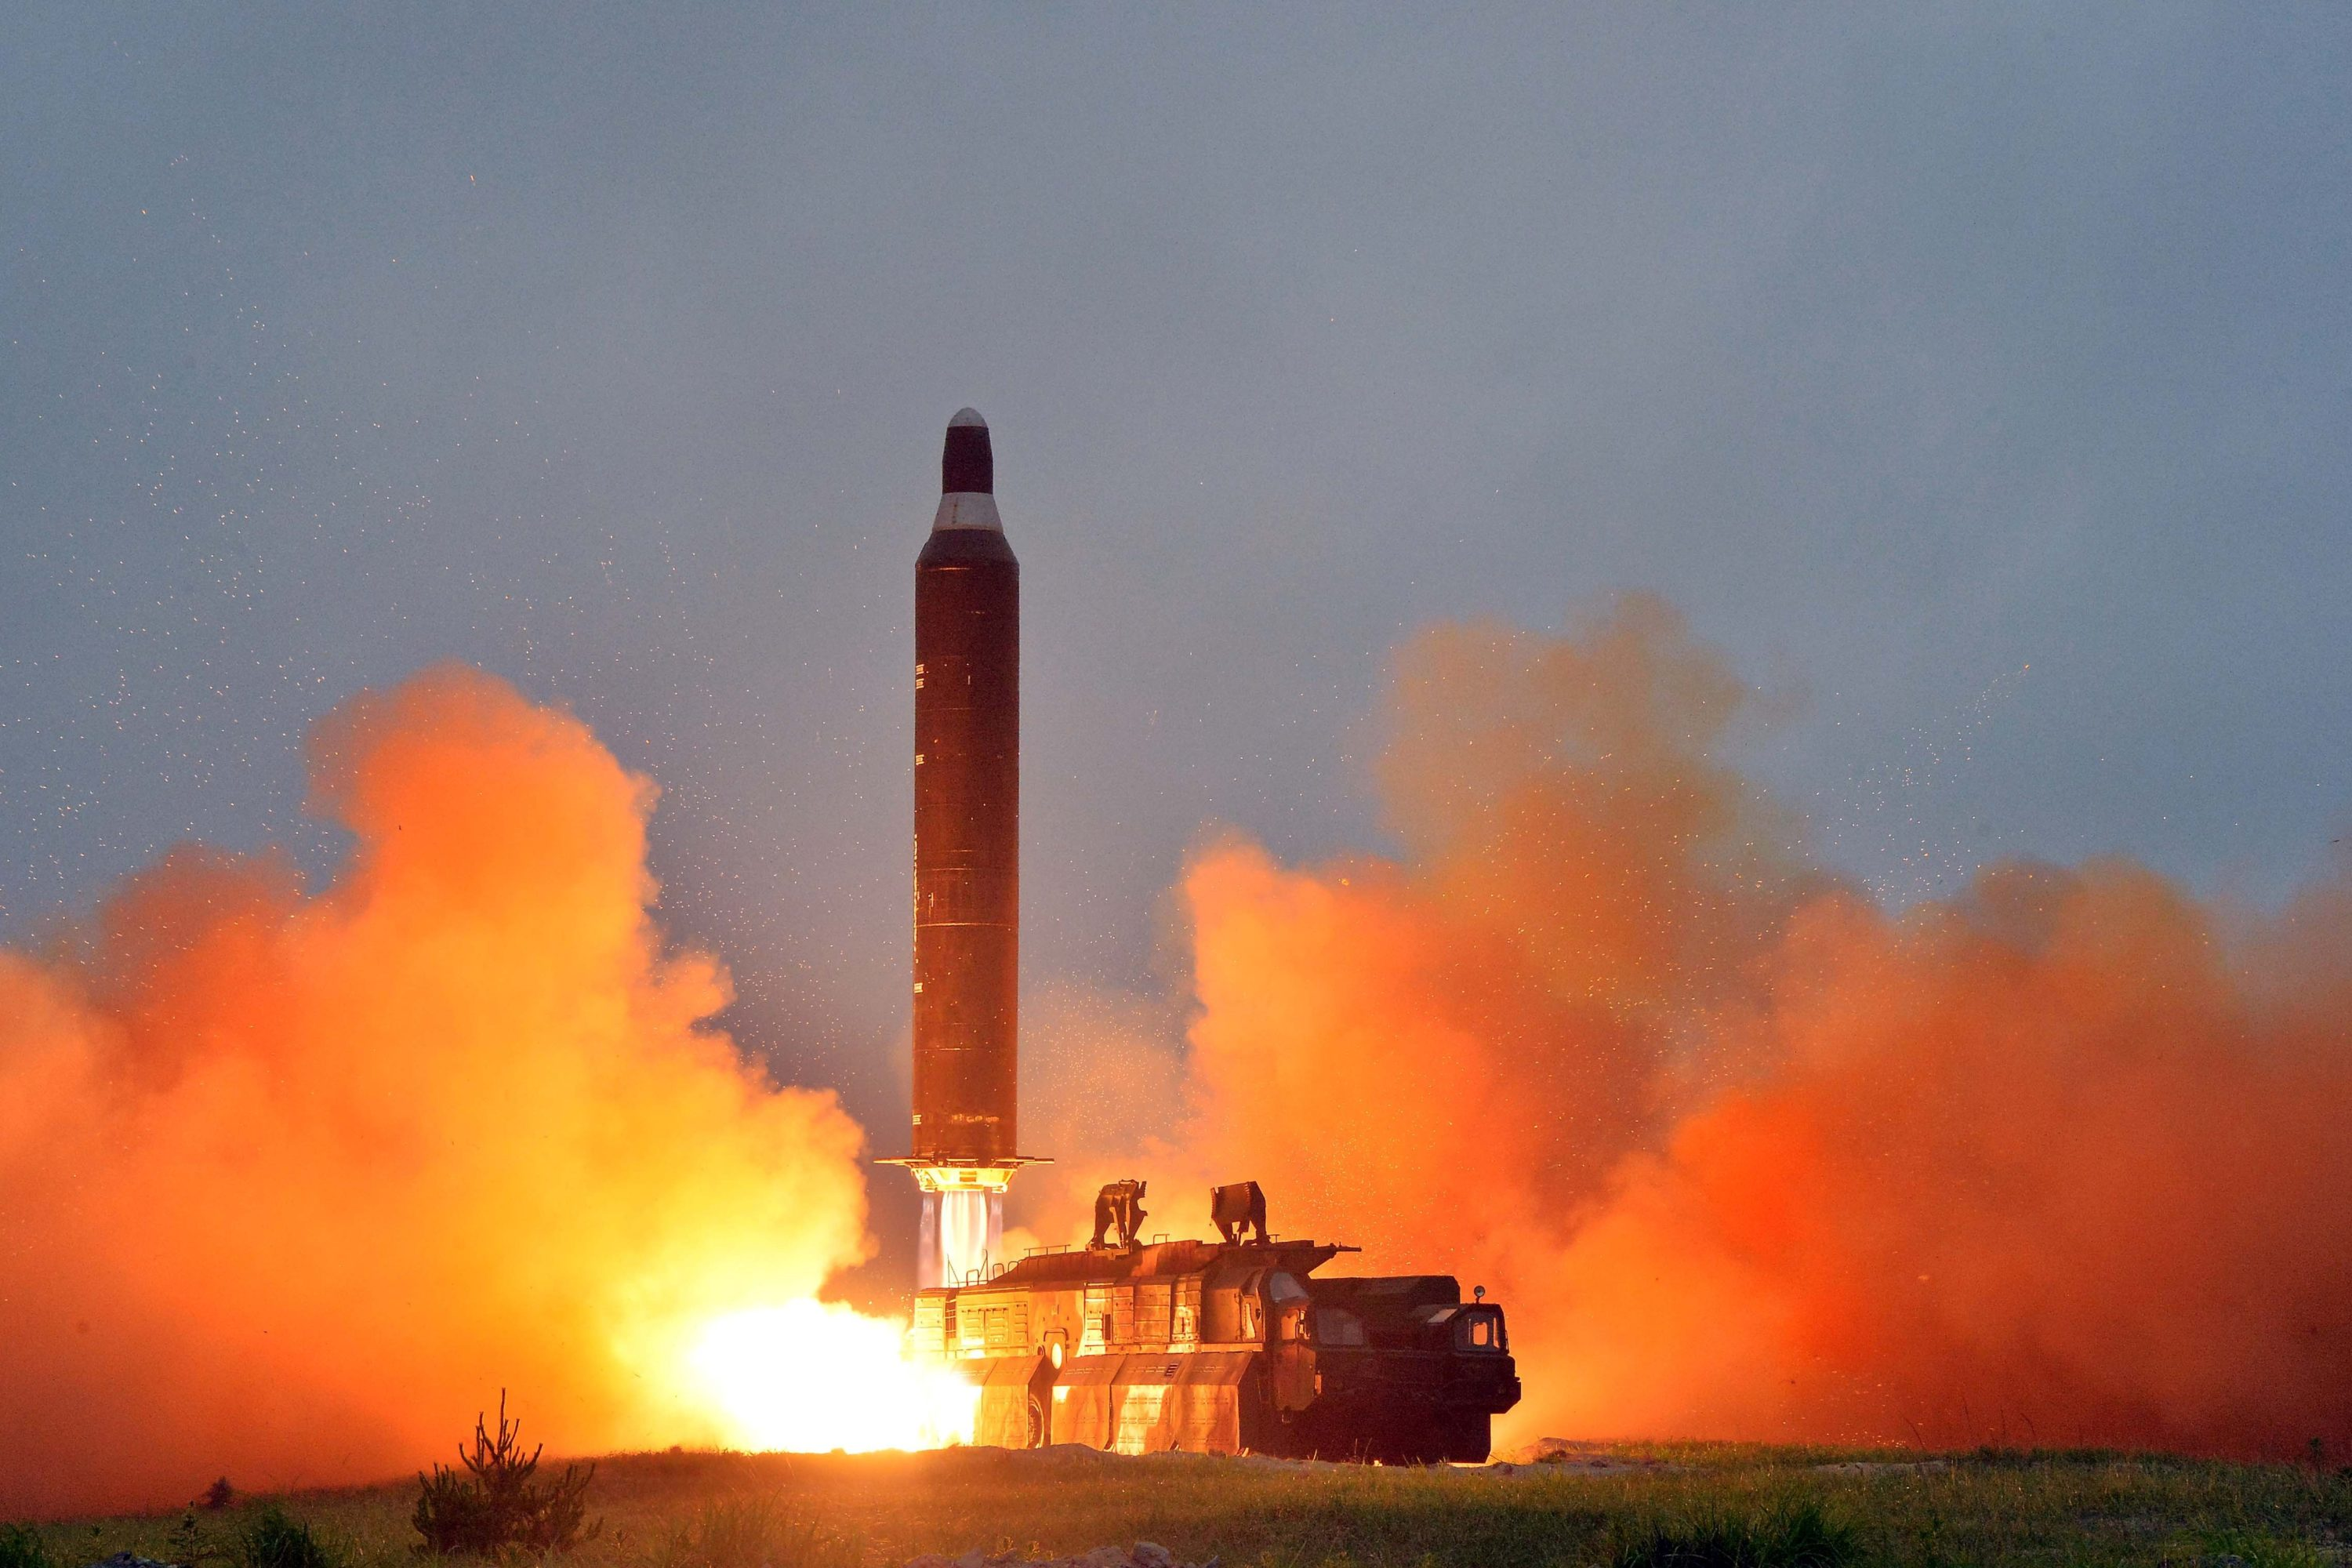 A test launch of ground-to-ground medium long-range ballistic rocket Hwasong-10